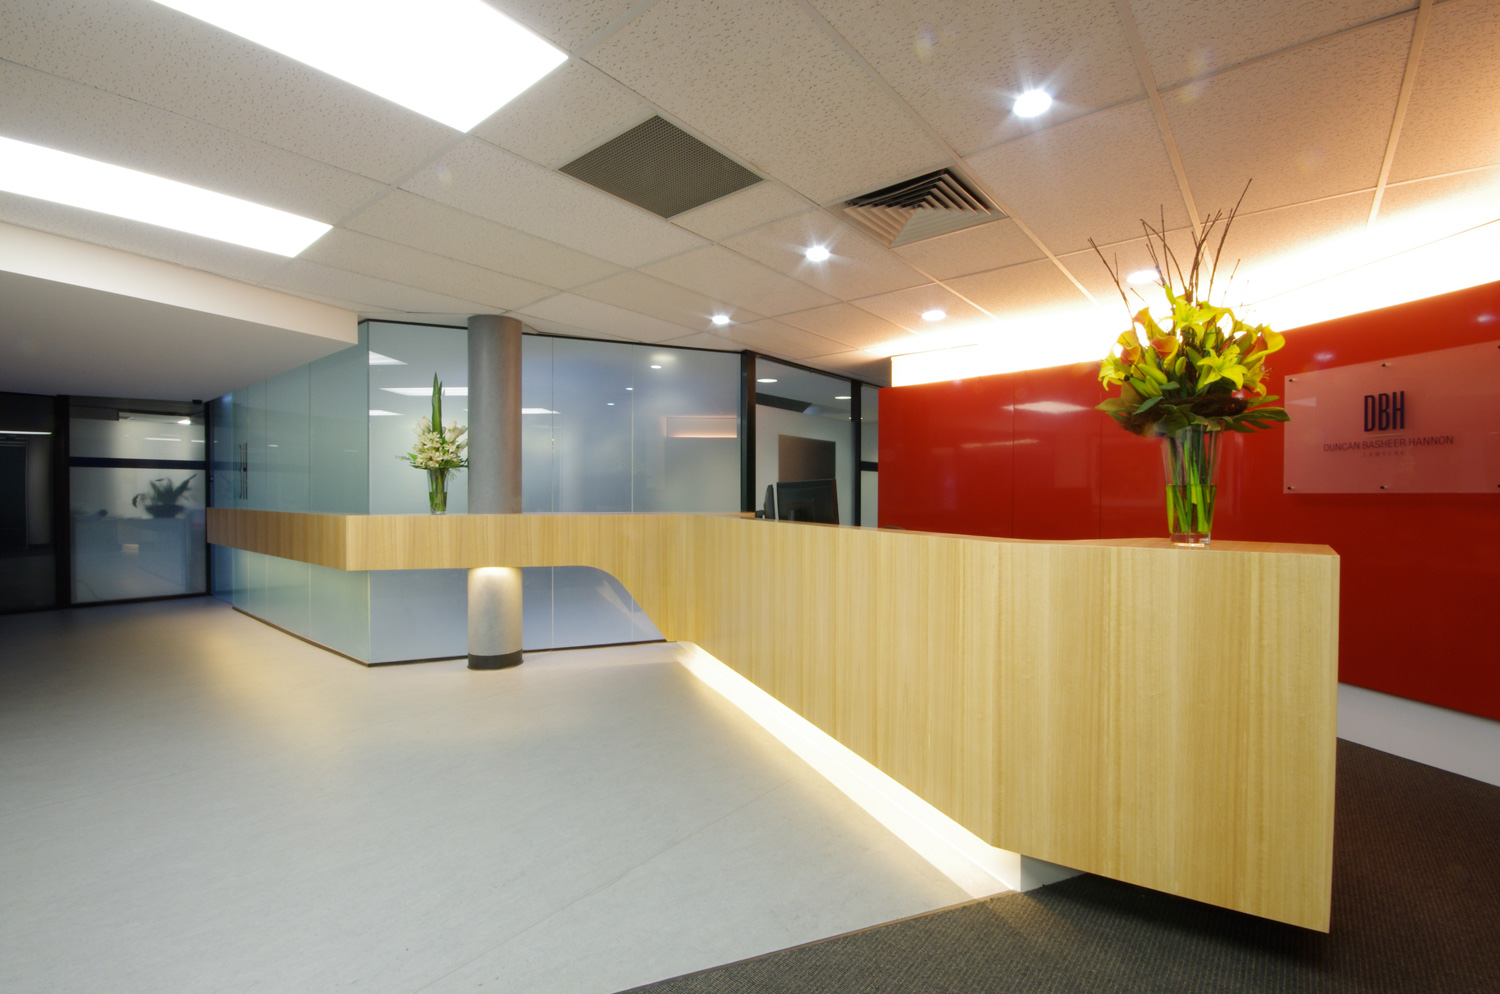 https://www.dbh.com.au/location/   # commercialarchitecture #commercialarchitect #DBHLawyers #Adelaideoffice #adelaideofficerefit #fitout #refit  #khabarchitects #adelaidecommercial #awardwinningarchitecture  #architect #architecturelovers #architect #architecturephotography #architectureporn #architects #architectural #architecturelover #architecturestudent #architecturalphotography #architecturedesign #architectanddesign #architecturephoto #architecturaldesign #architectureschool #architecturaldigest #architecturesketch #architecturemodel #architectura #Architecte #architecturelife #architecturegram #architectureandpeople #architecturelove #architecturedaily #buildings #adlarchigram #courtyardhouse @adelaide_photographer #pressedtin #naturaltimber #dulux #duluxcolour #adelaide #khabarchitects #adelaidehouse #awardwinningarchitecture